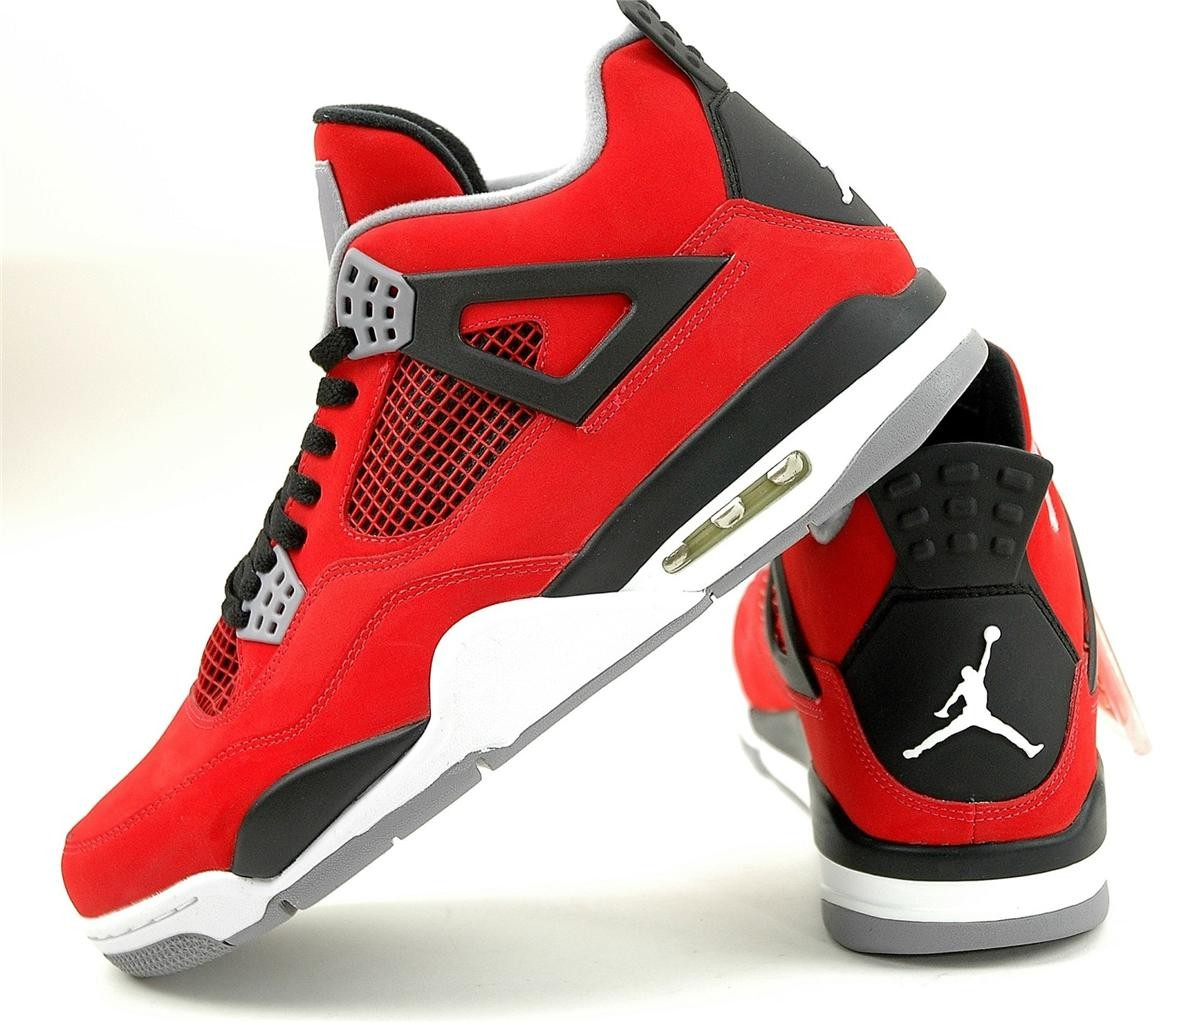 WMNS Air Jordan 4(IV) Toro Bravo Fire Red White Cement Grey Black Womens Basketball Shoes